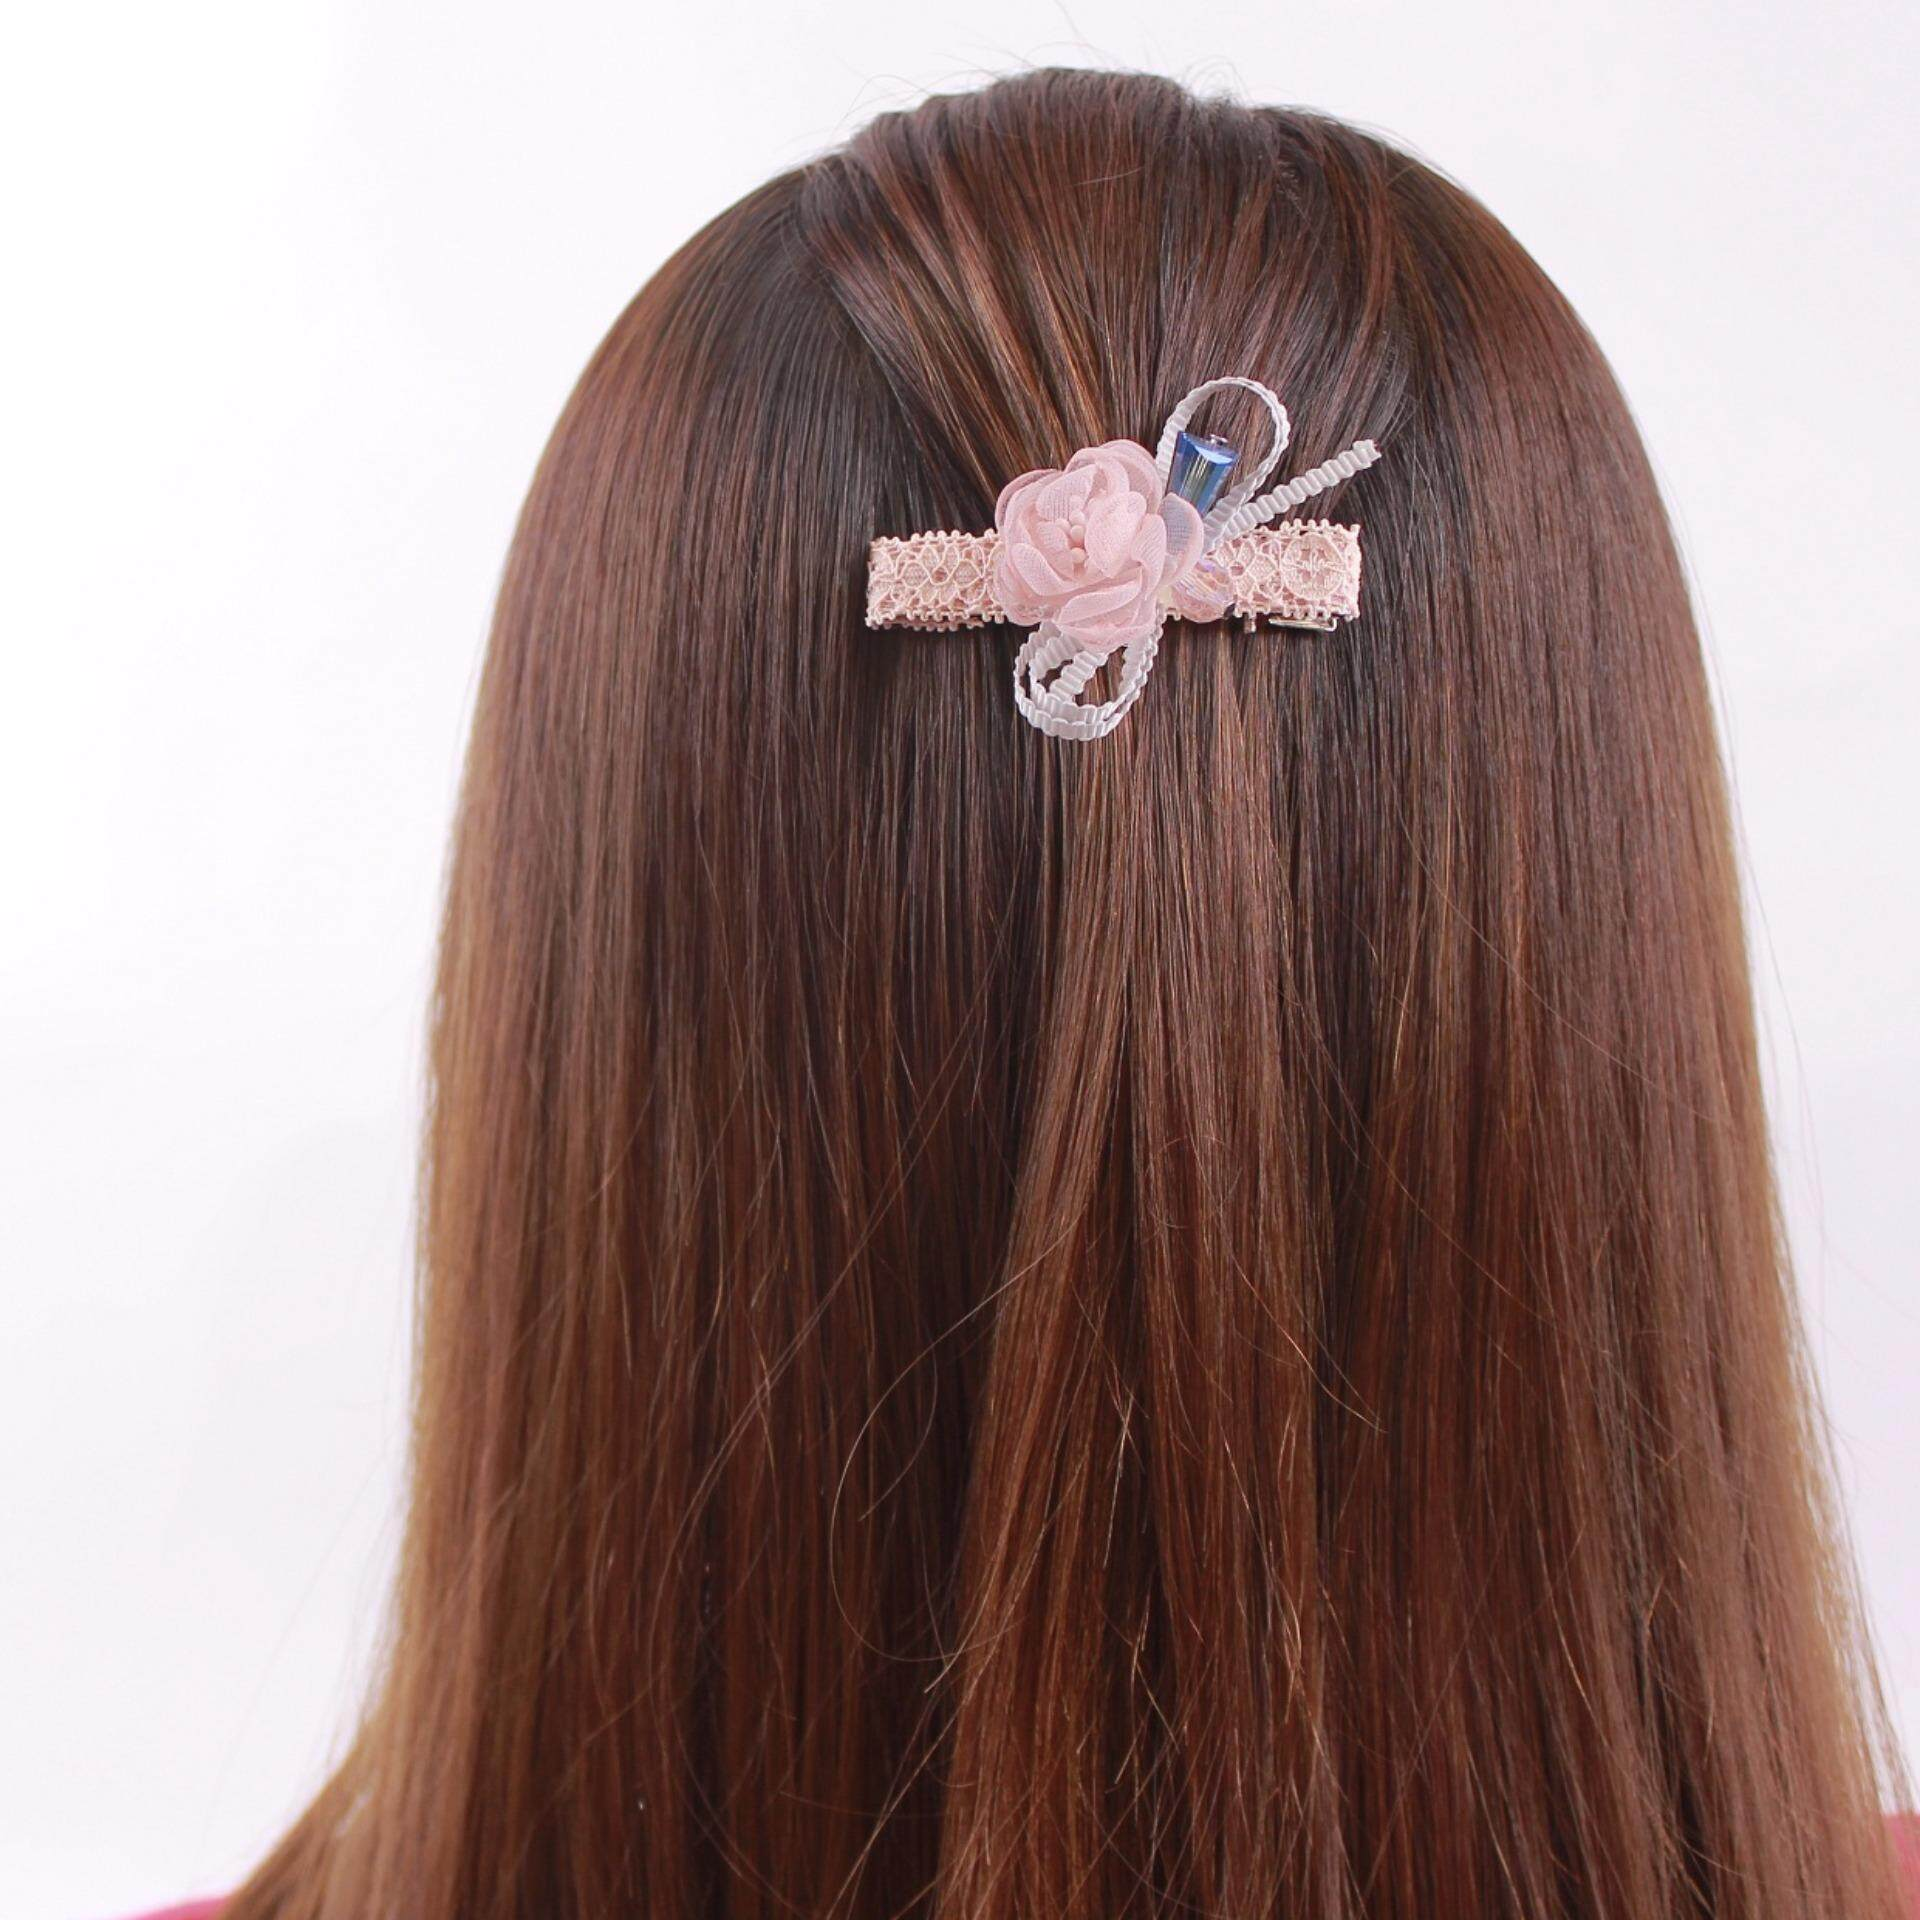 AFGY FGA 202P 70303 Hair Clip with Crystal Glass Jewel Accents (Length 6.5cm, Pink)